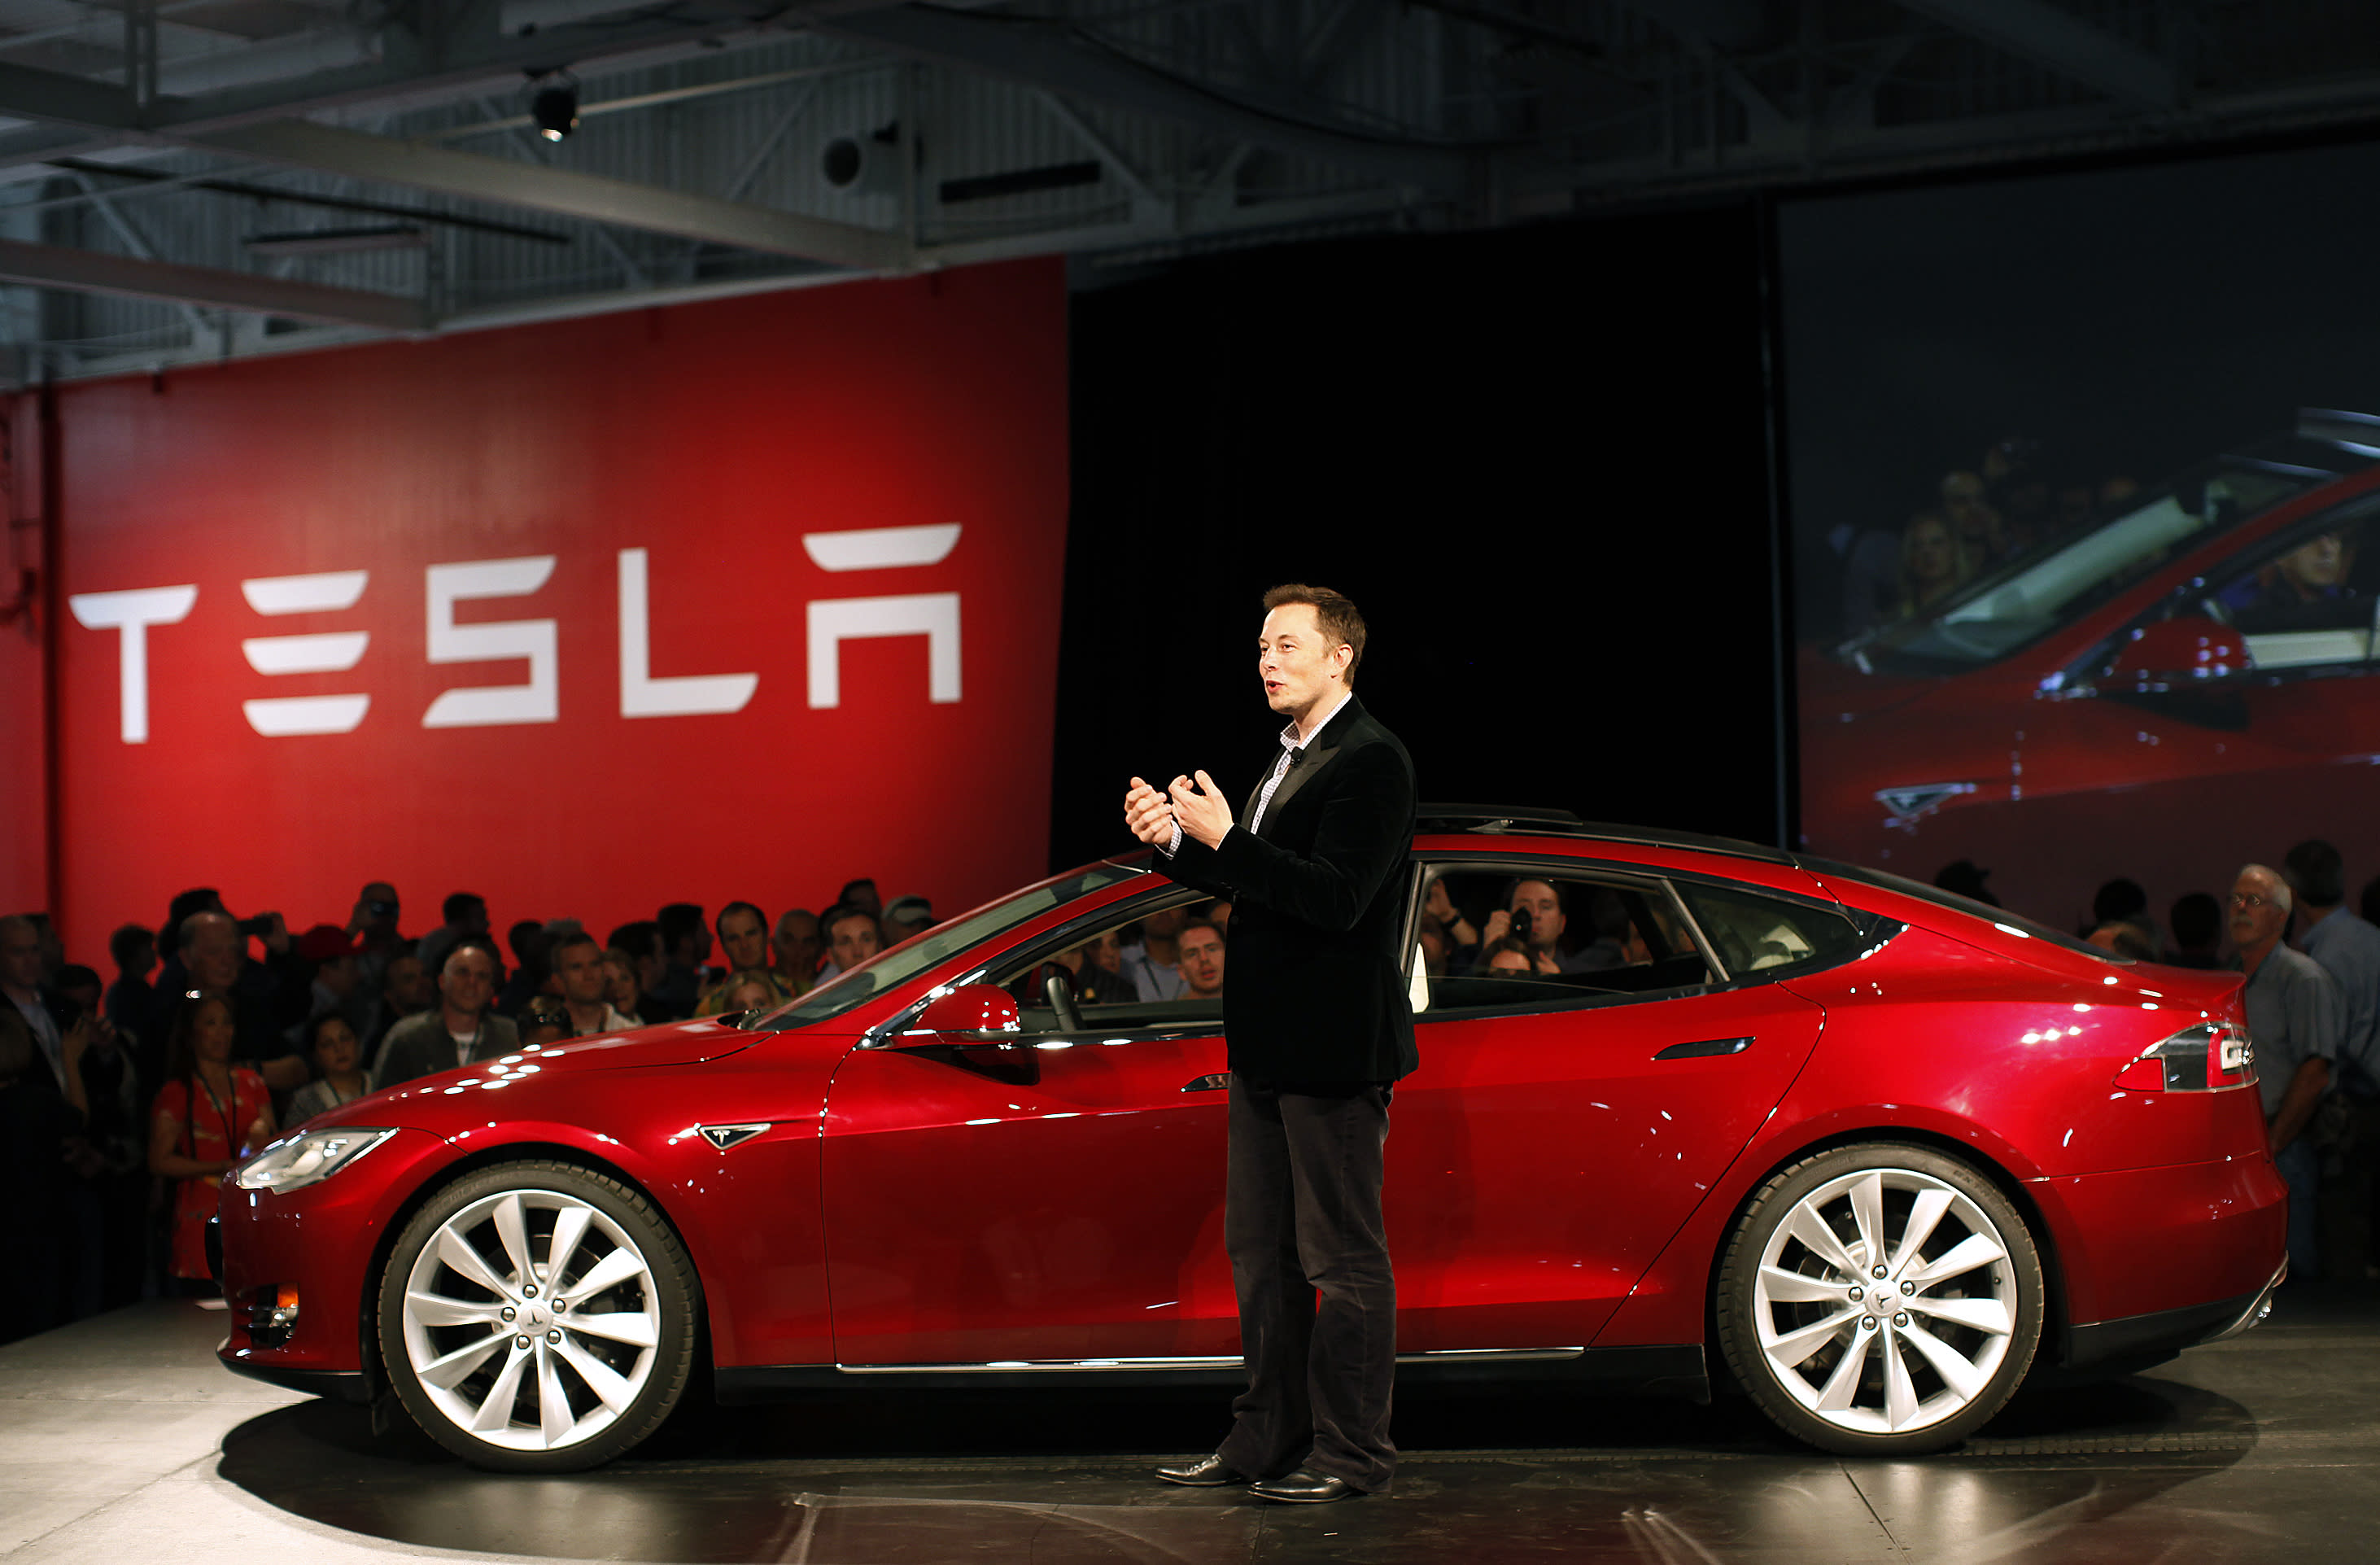 Before Elon Musk talked to Google about buying Tesla, the car maker admitted that it was running out of money